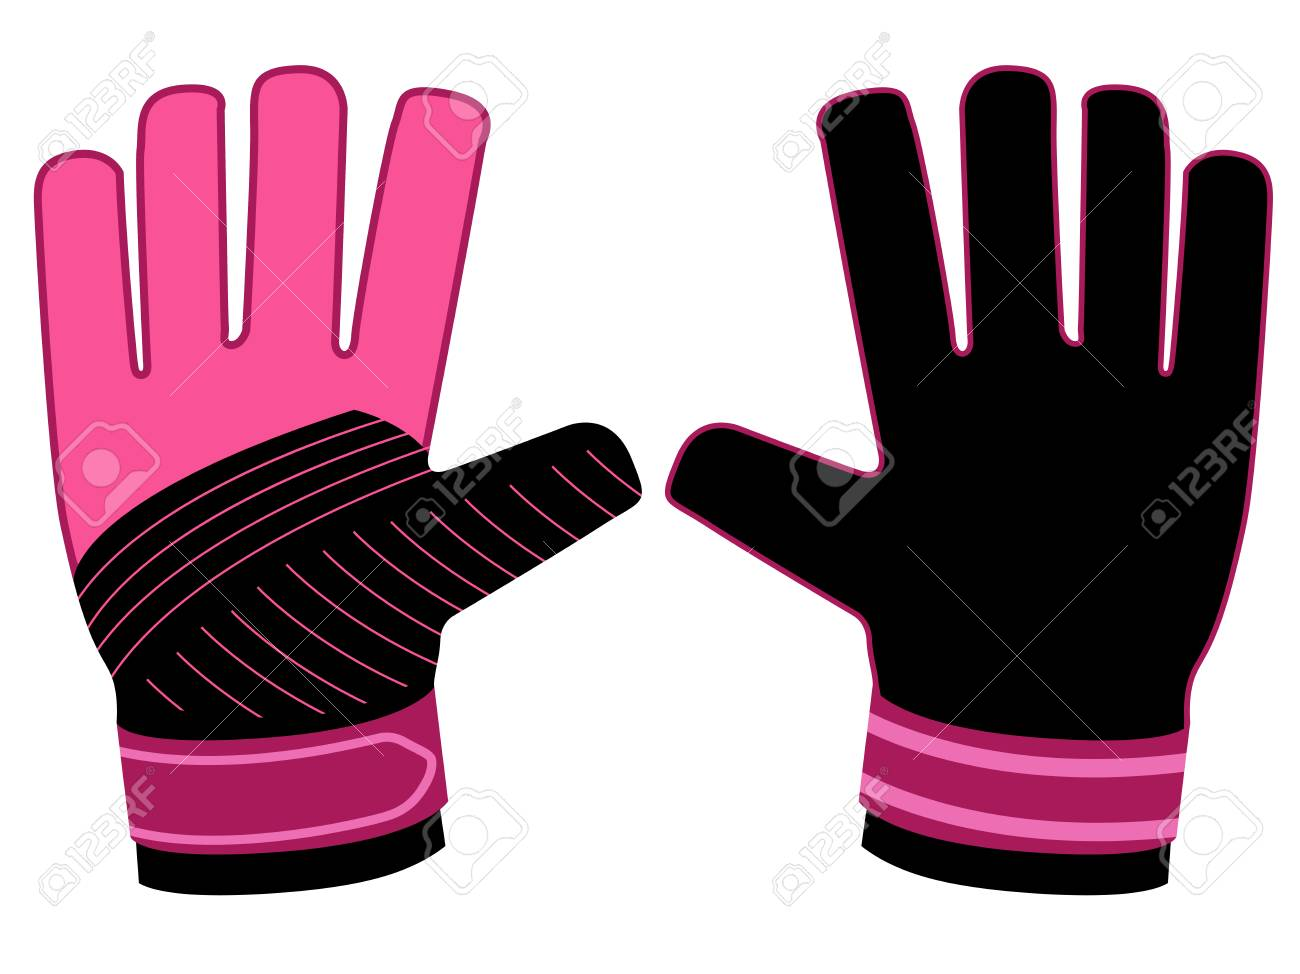 Isolated Goalkeeper Gloves Icon Royalty Free Cliparts Vectors And Stock Illustration Image 102189925